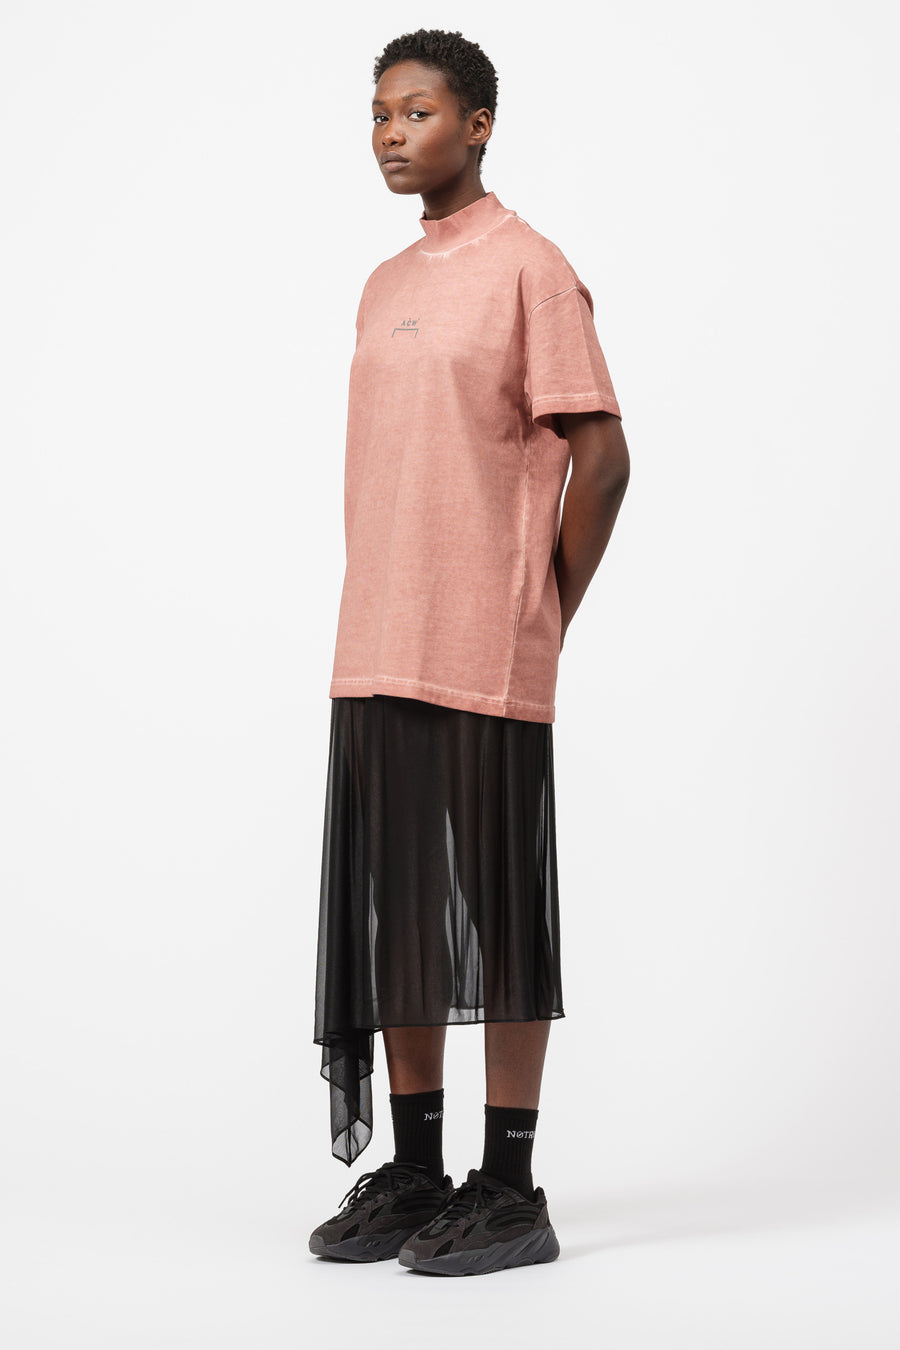 A-COLD-WALL* Rib Neck T-Shirt in Rust - Notre